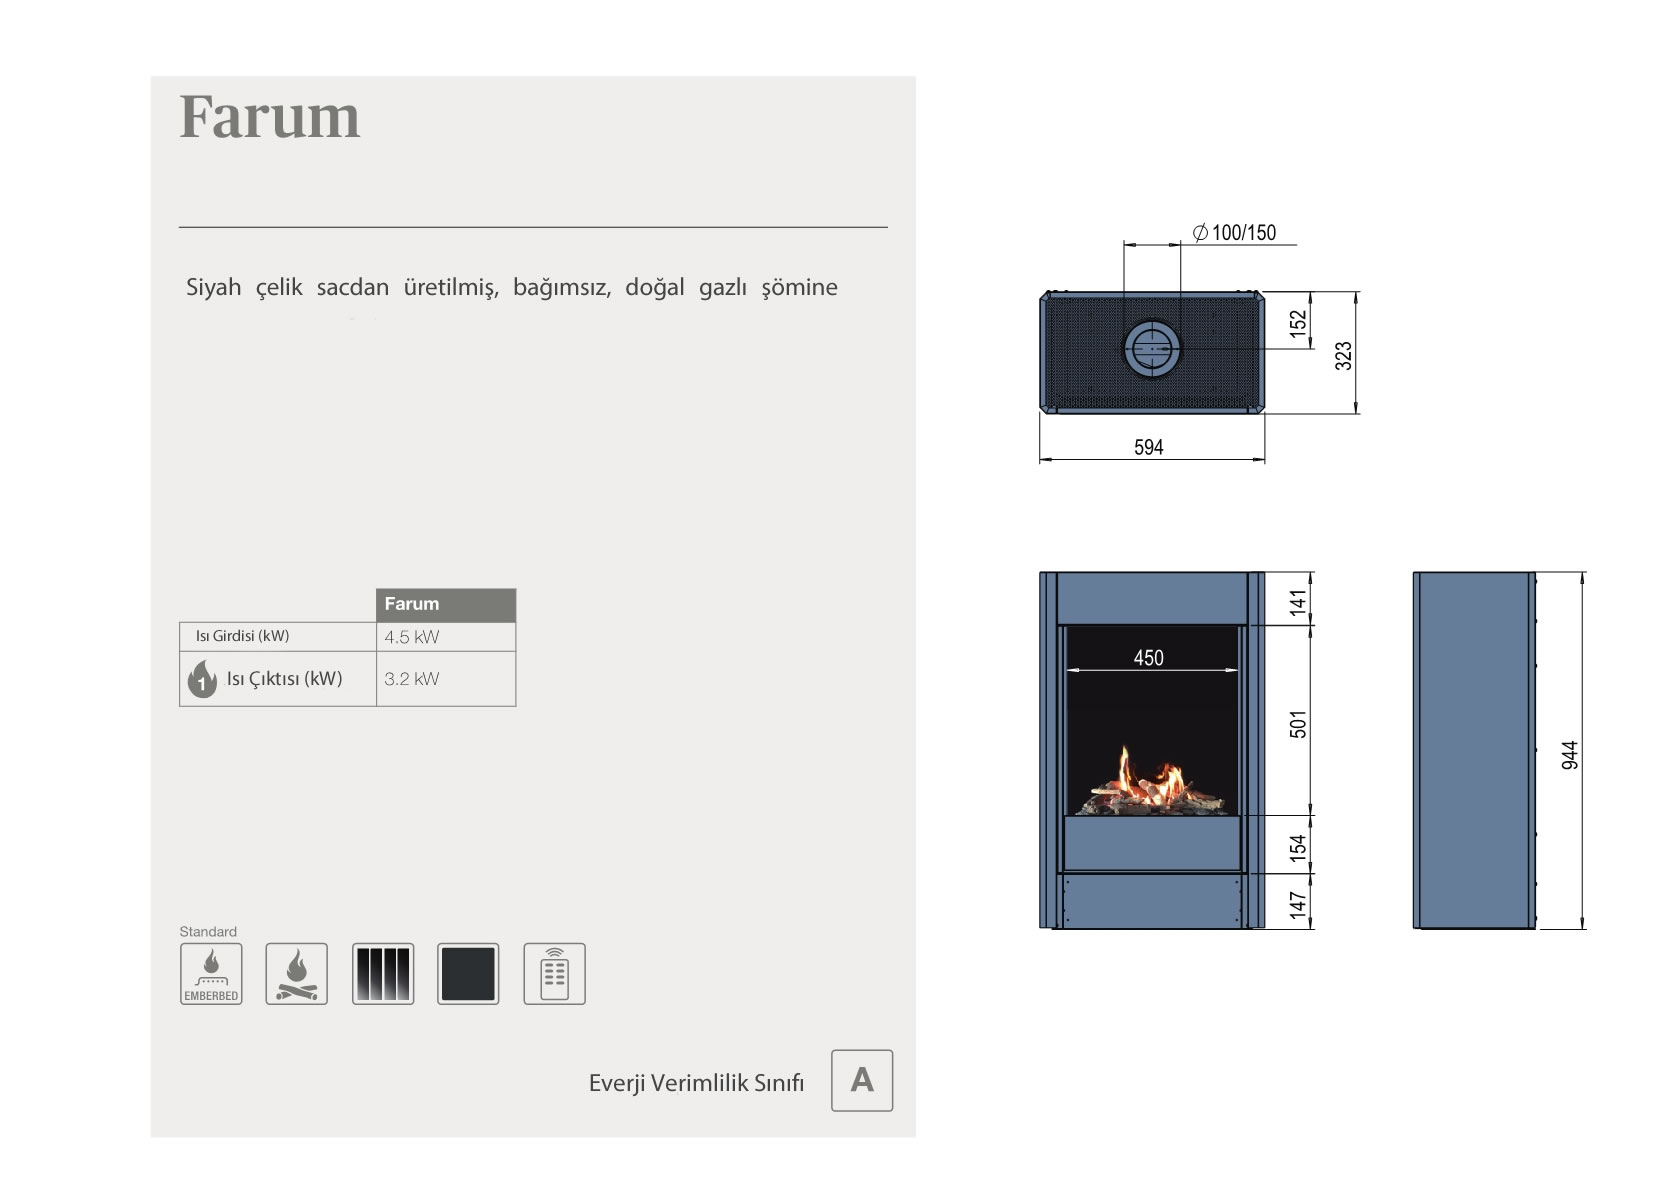 Faber Natural Gas Fireplaces - Farum